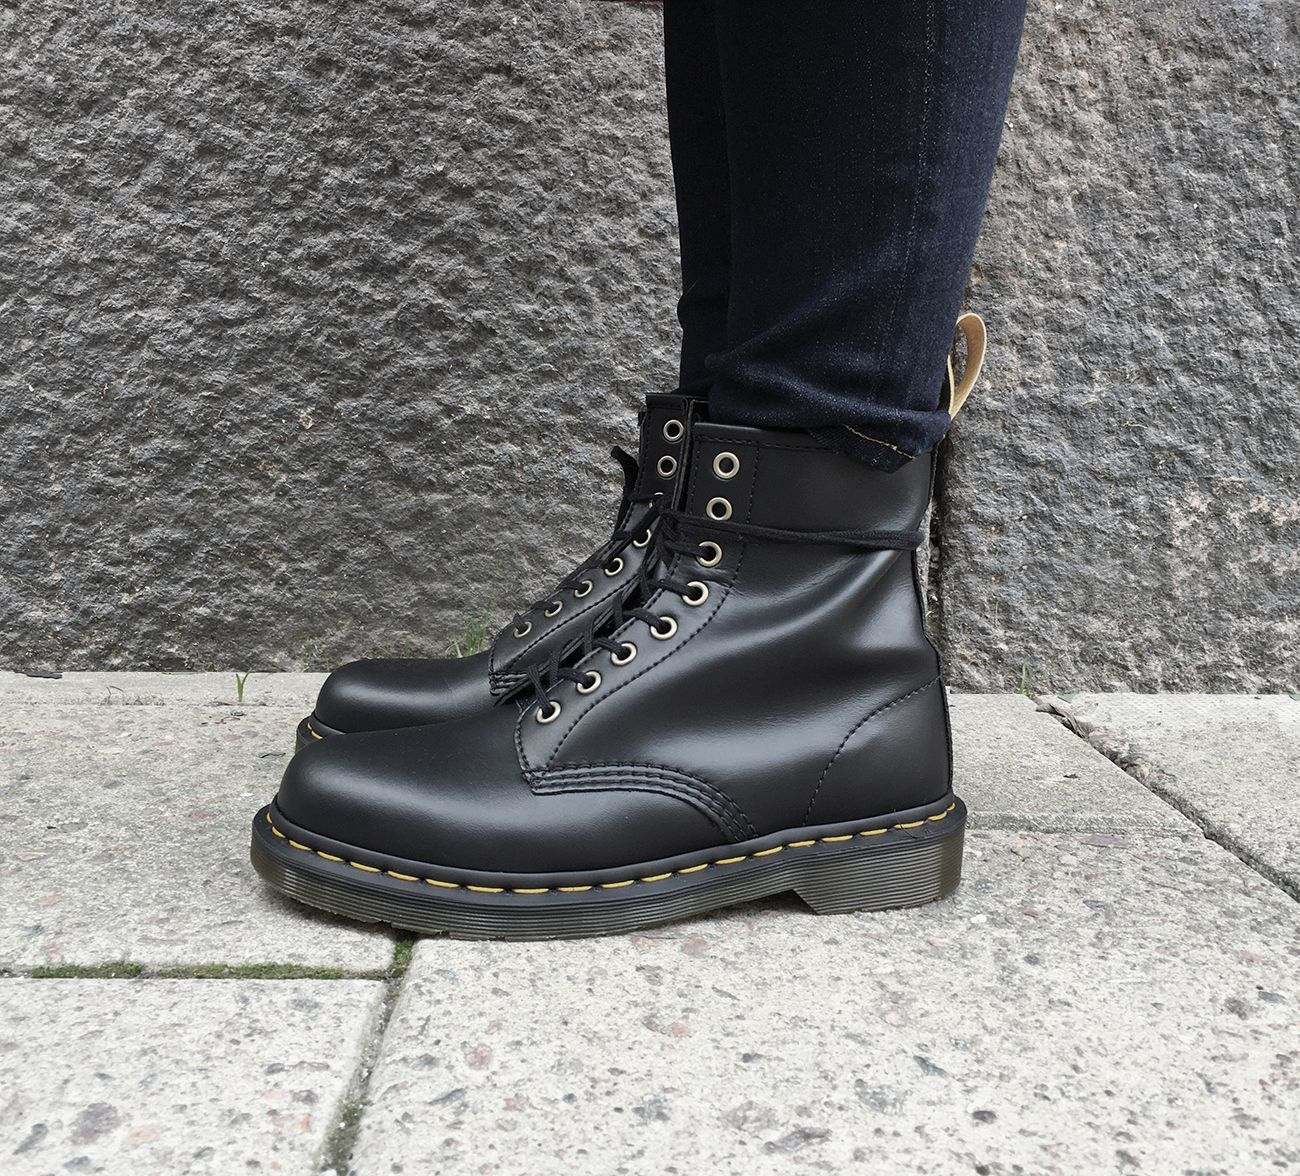 1460 8 eye boot from Dr Martens made with black vegan